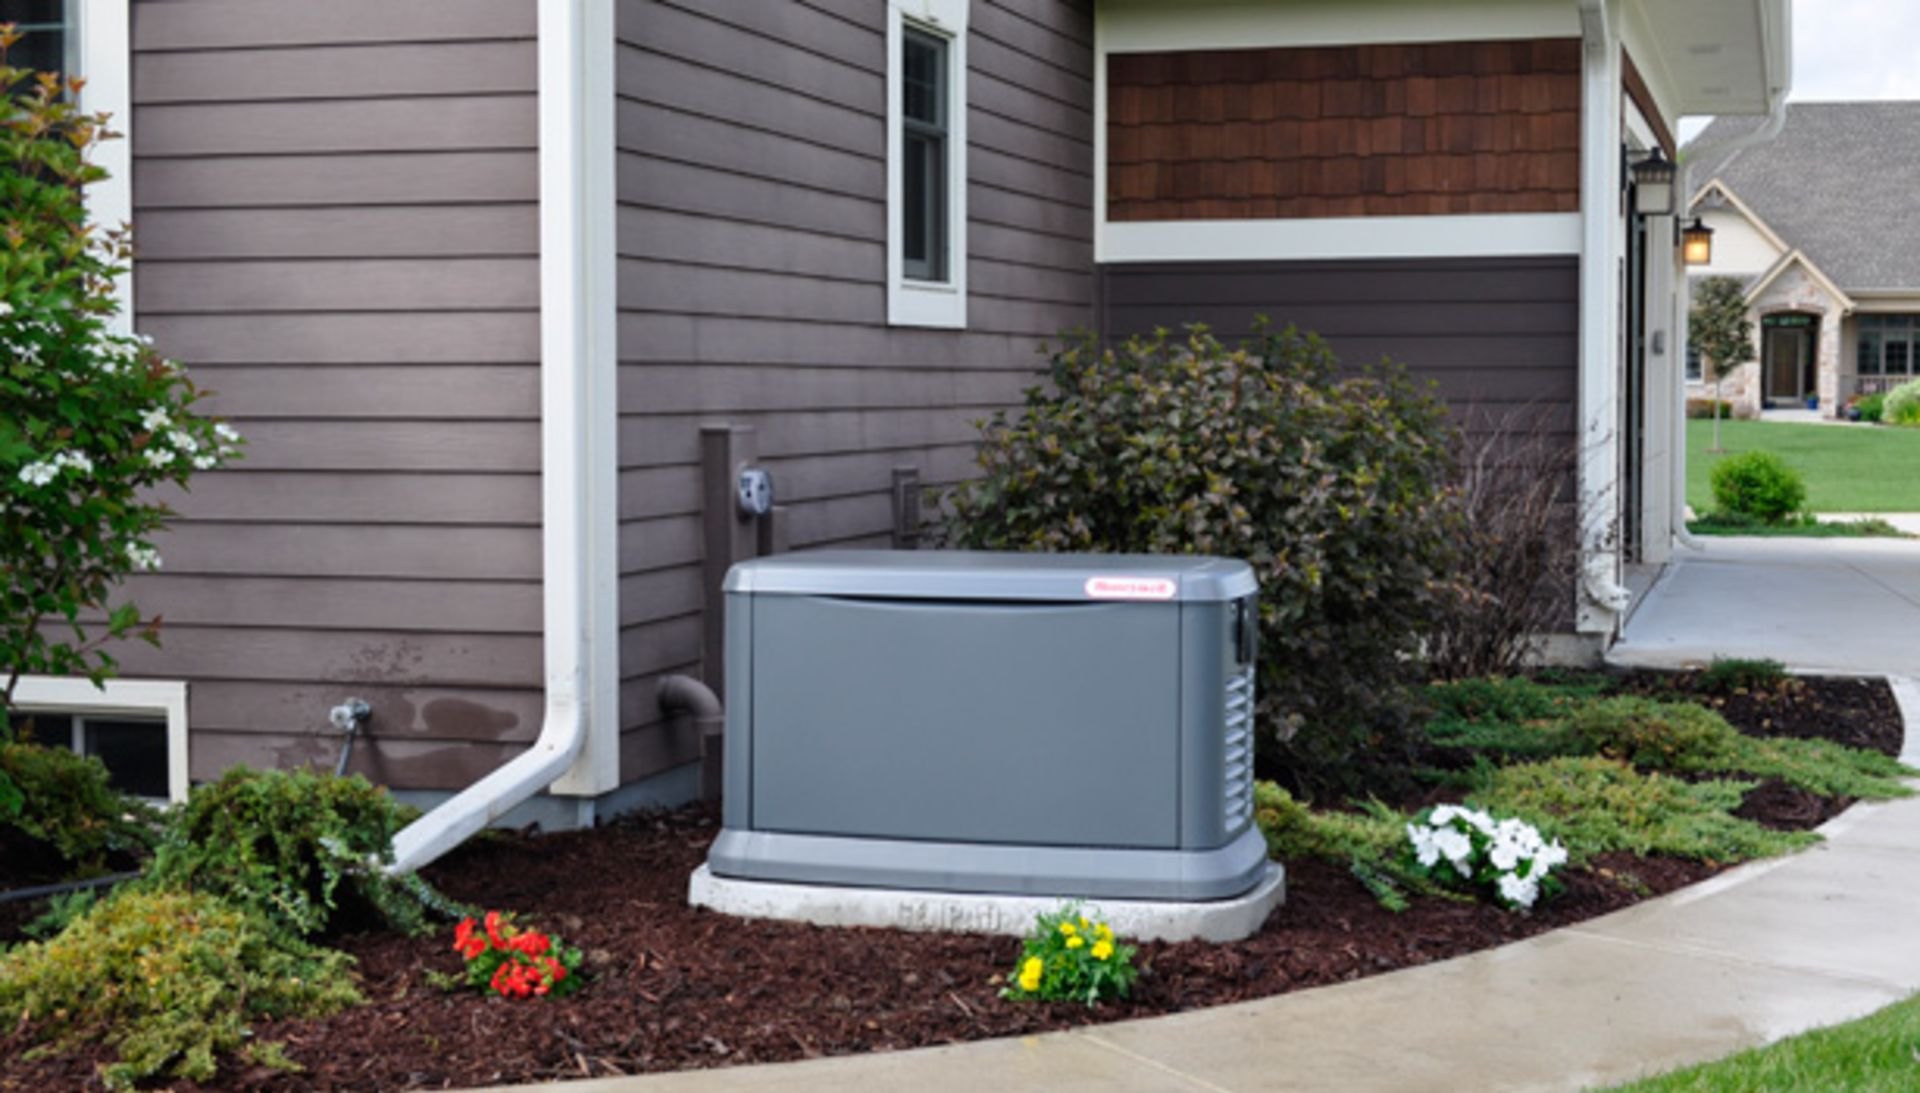 7 Things to Know About Whole-Home Generators